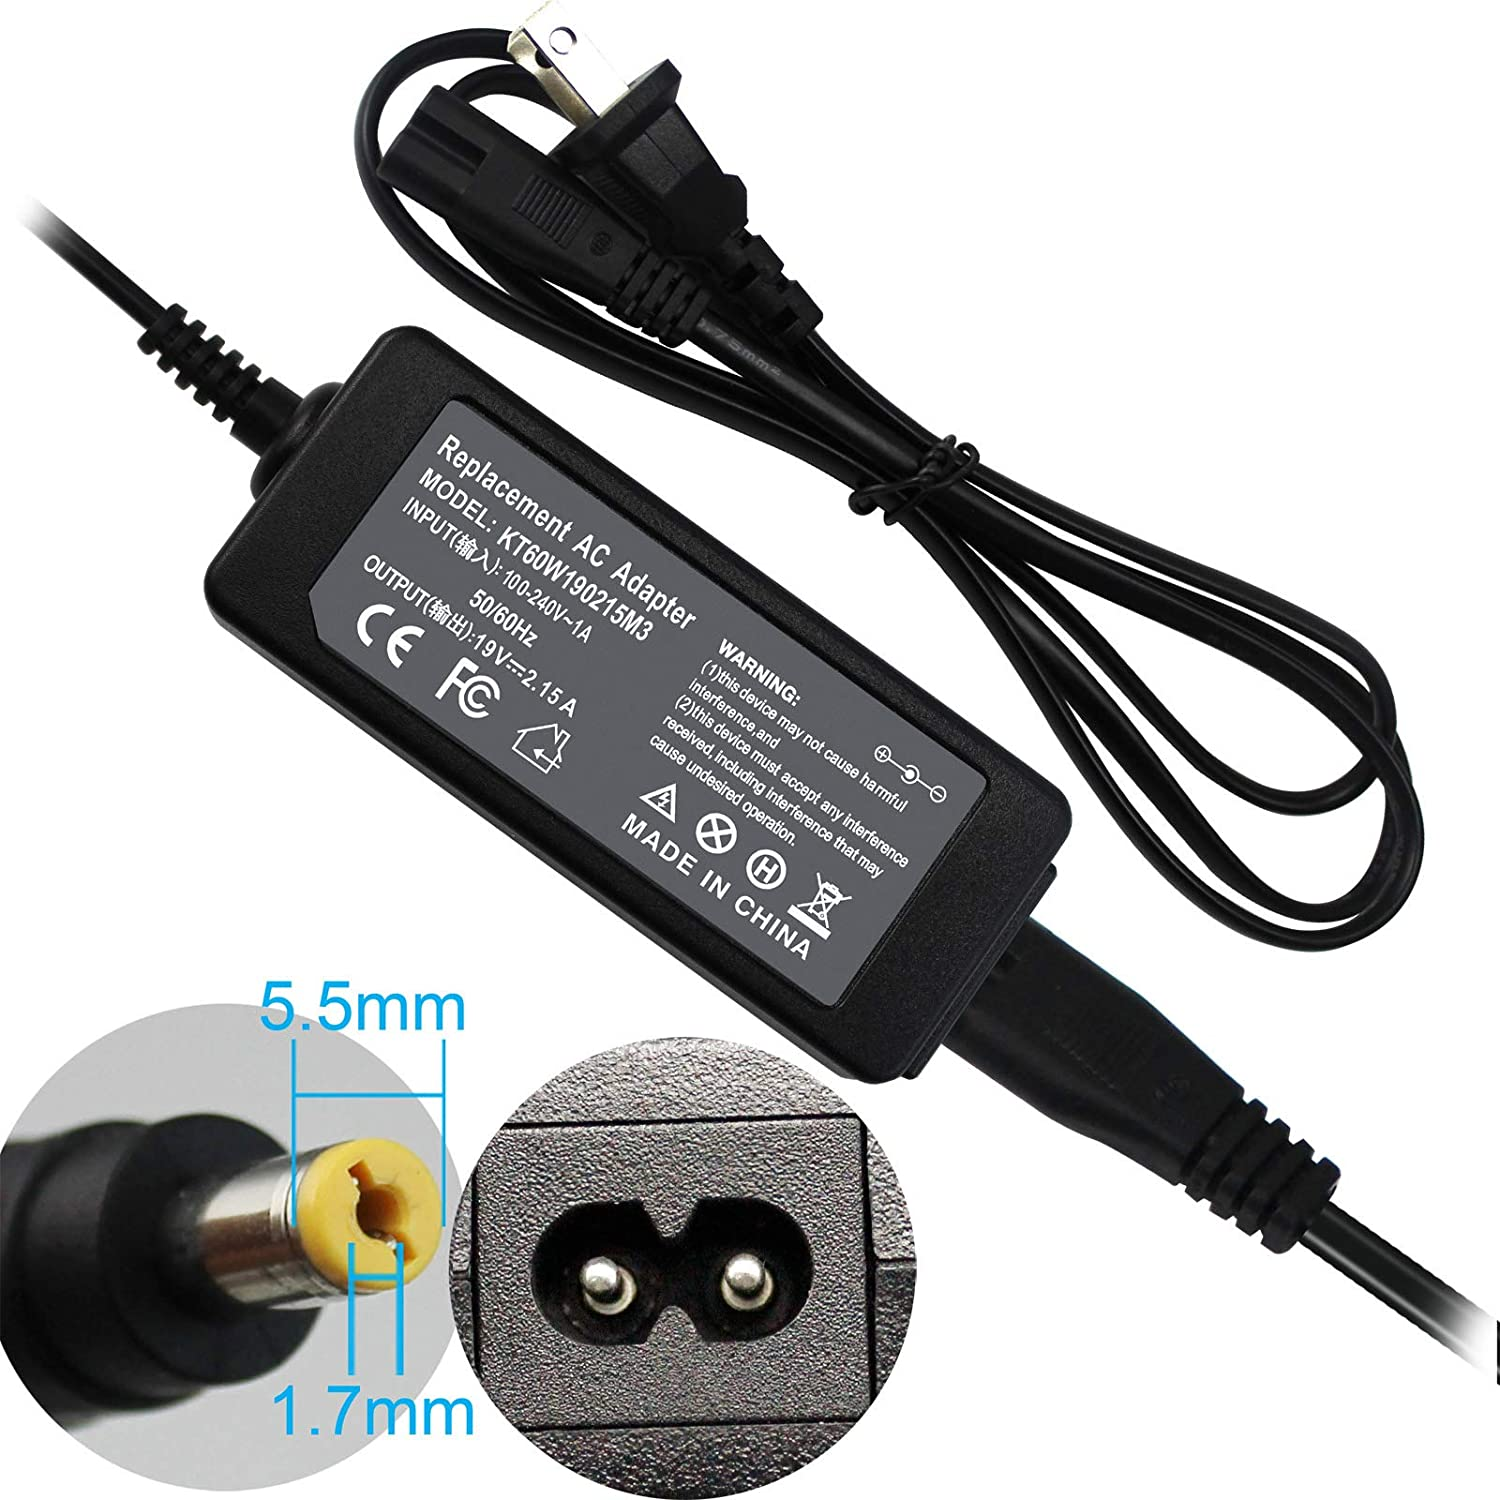 FLYTEN 19V 2.15A 40W S220HQL Charger for Acer Aspire One AO722,Aspire E1 E5 ES1 E1-571 E1-572 E1-531 E5-511P E5-551 E5-573 E5-575 ES1-711 V3 V5 V3-551 ...